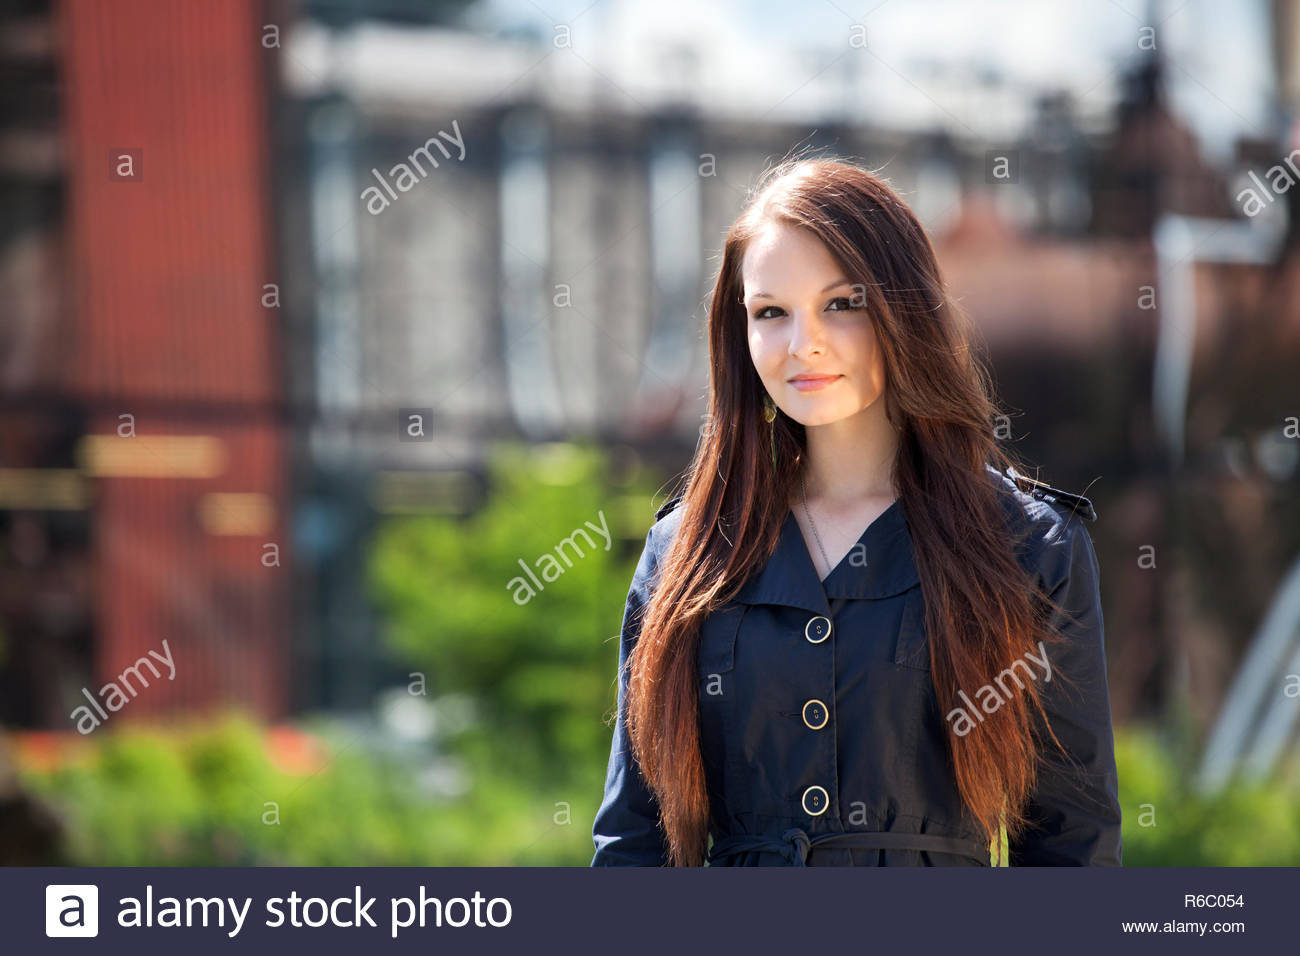 Portrait of young brunette woman in nature, in front of industrial background. - Stock Image